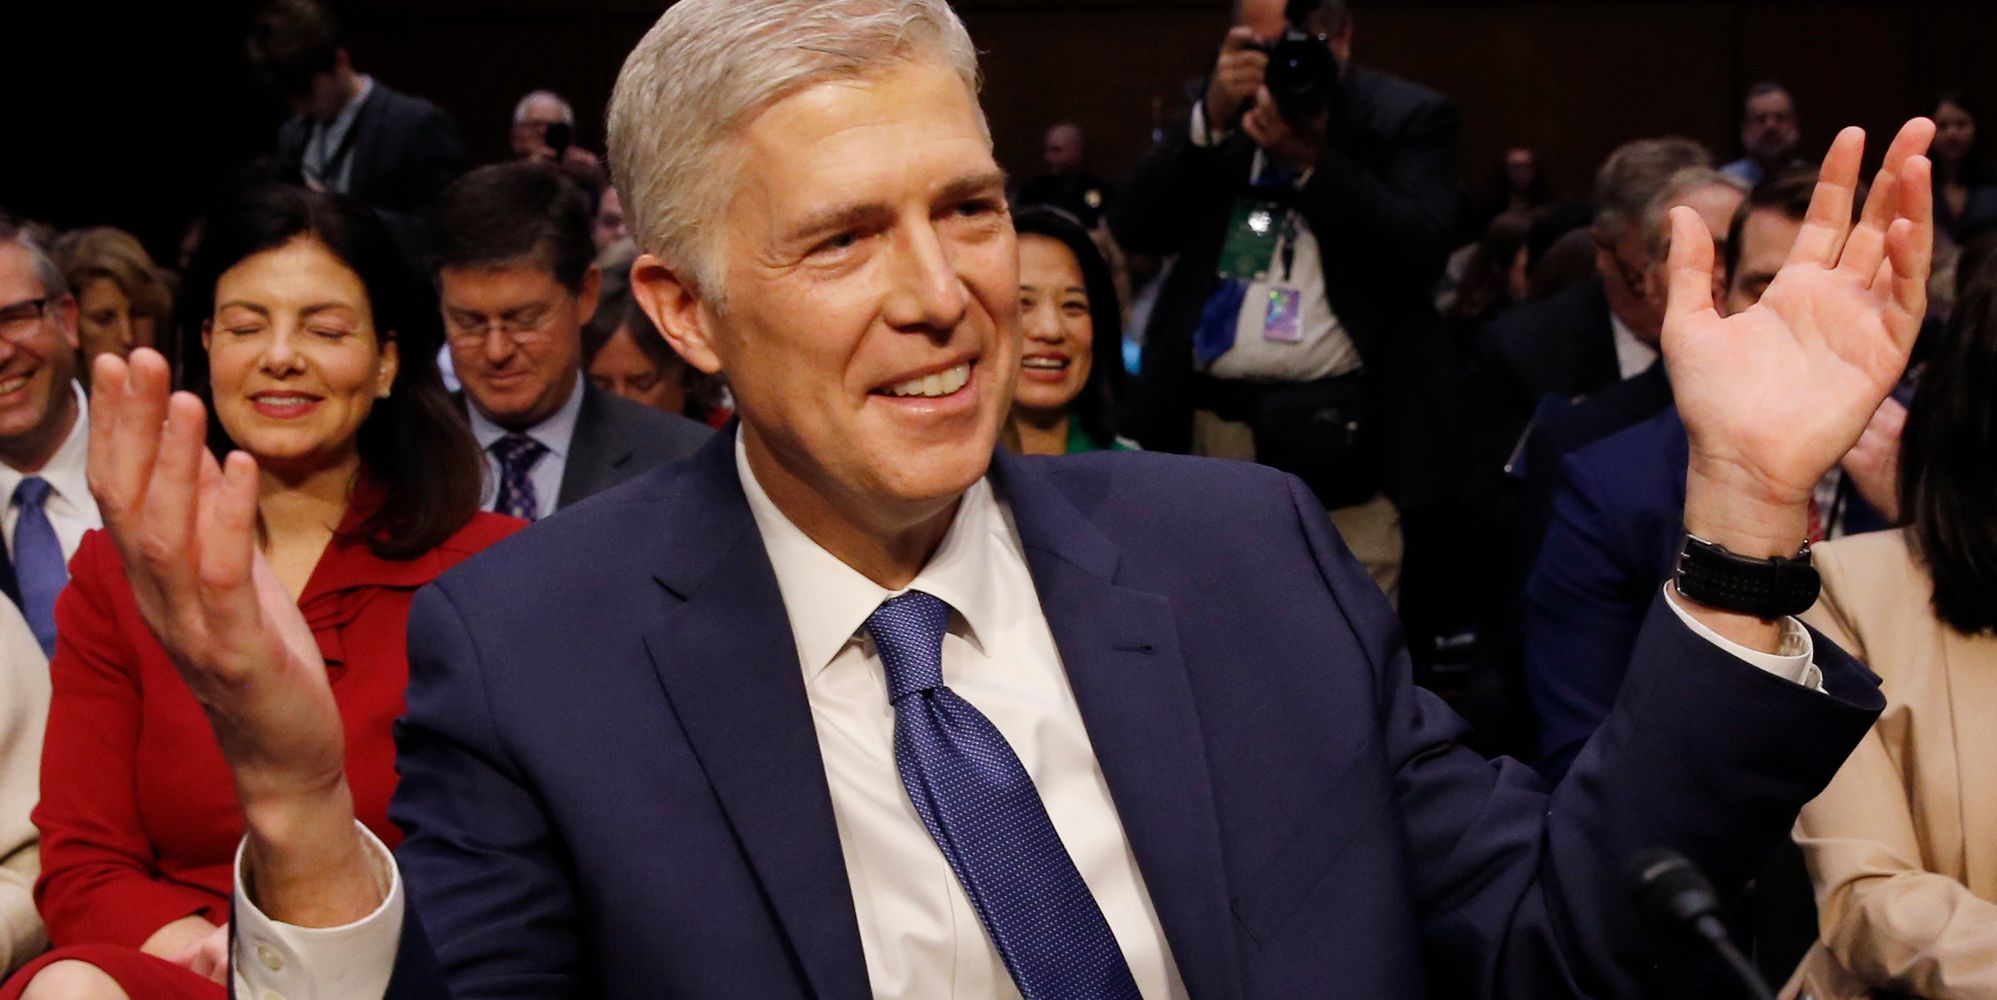 Neil Gorsuch Allegedly Said Women Abuse Maternity Leave. That's A Big Problem.